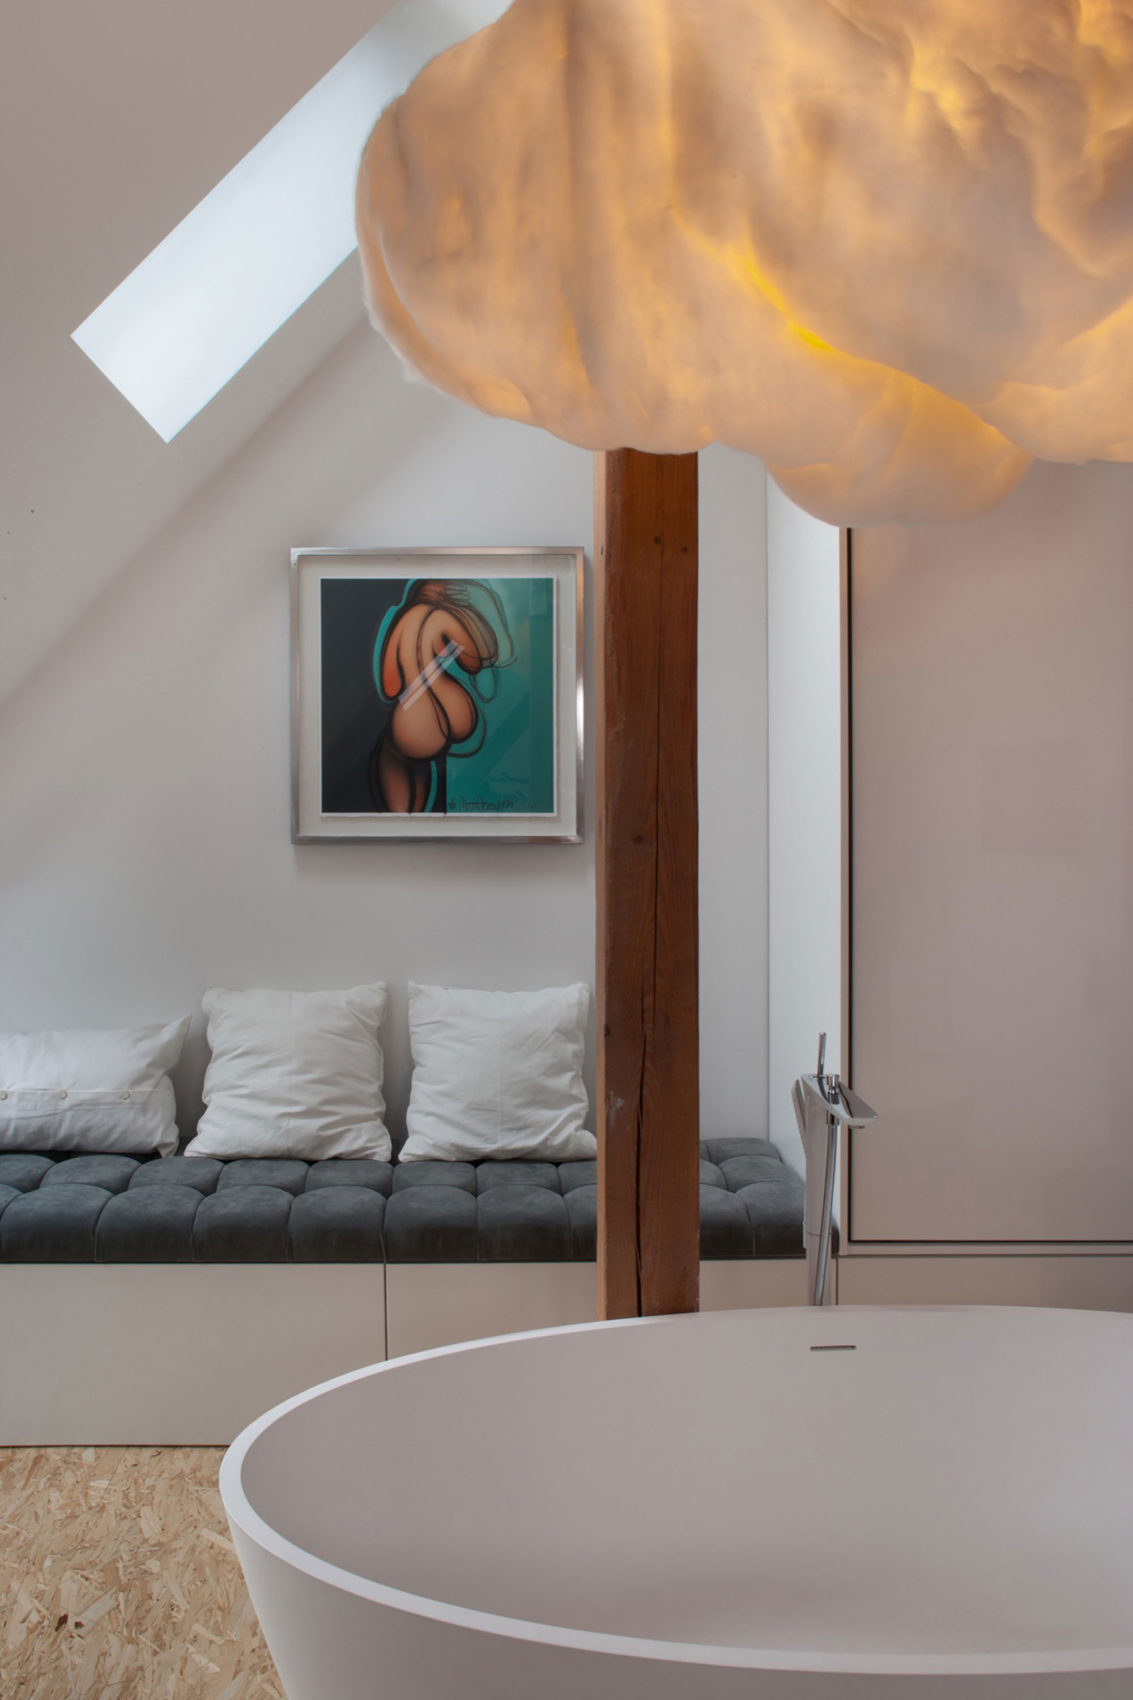 Apartment in Poznan by Cuns Studio (11)